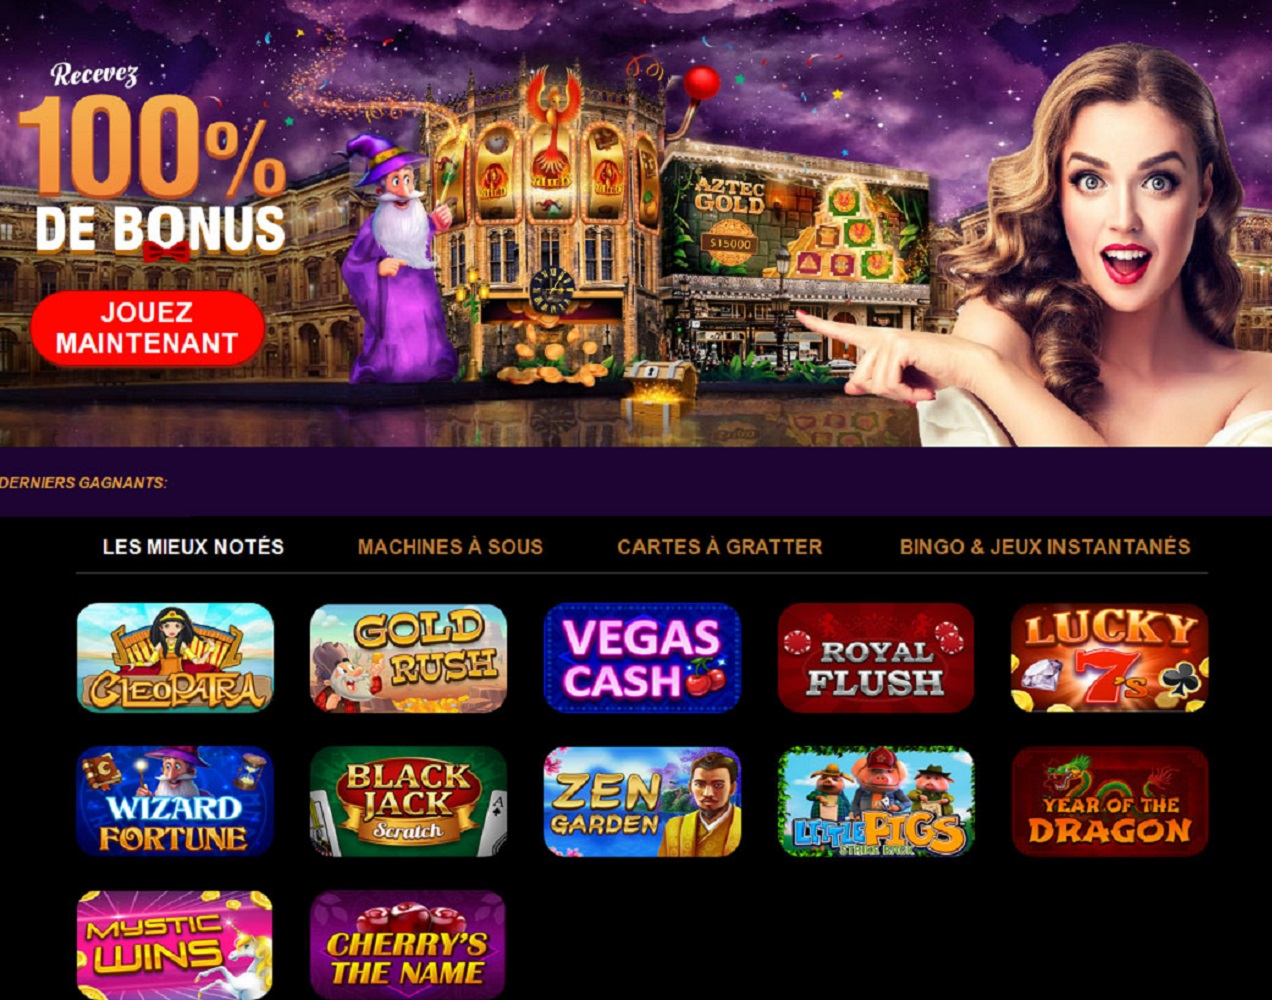 paris vip casino avis